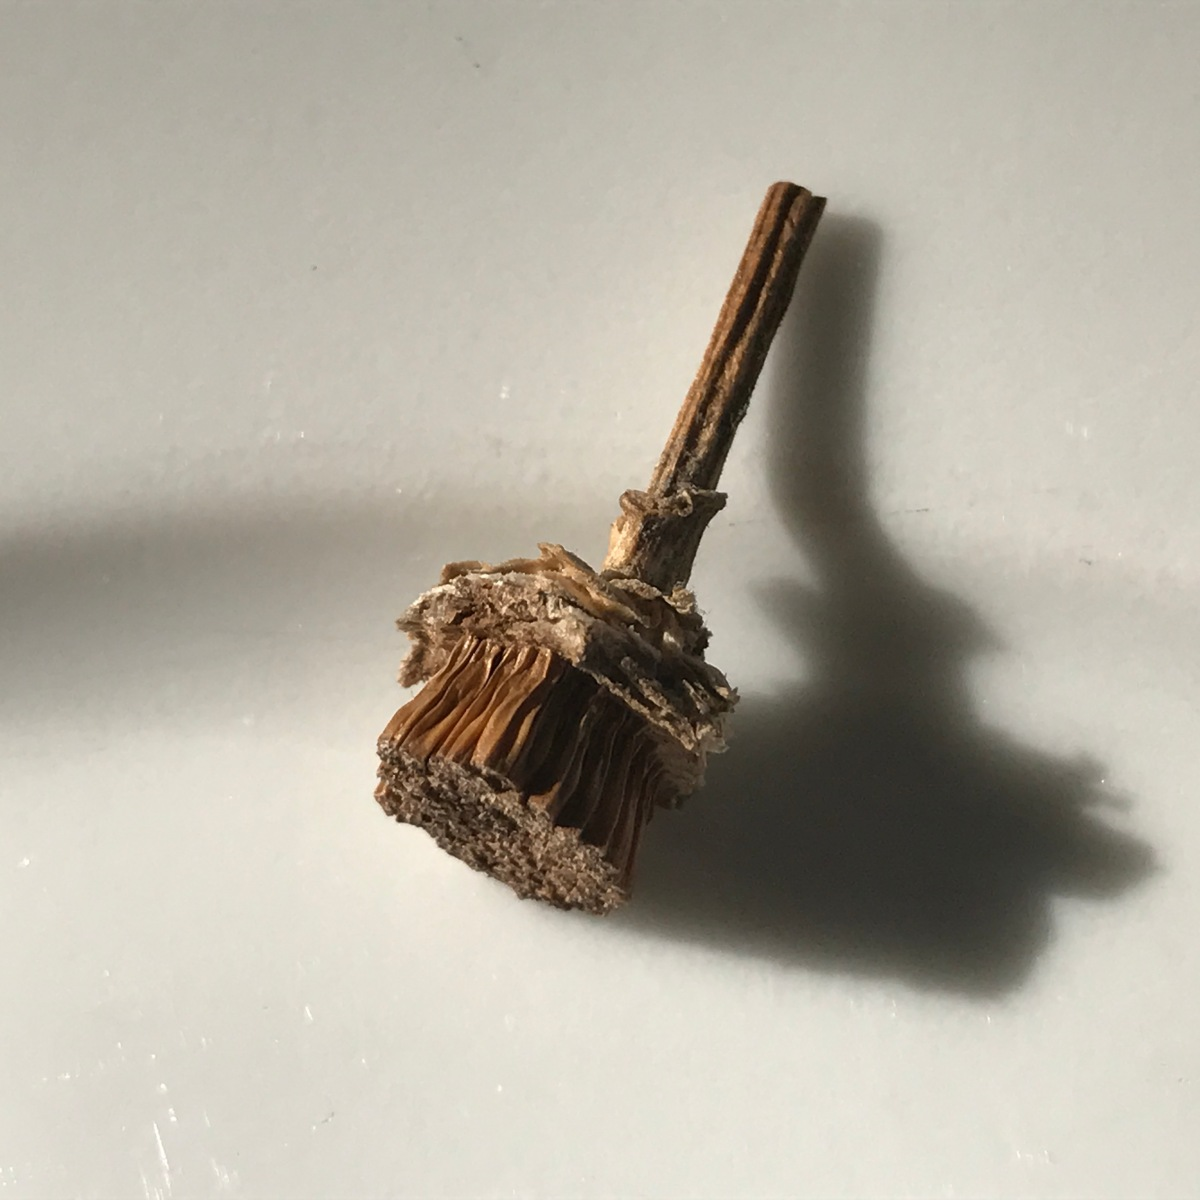 The World's Tiniest Flying Broomstick, or Collecting the Seeds of Stokes' Aster